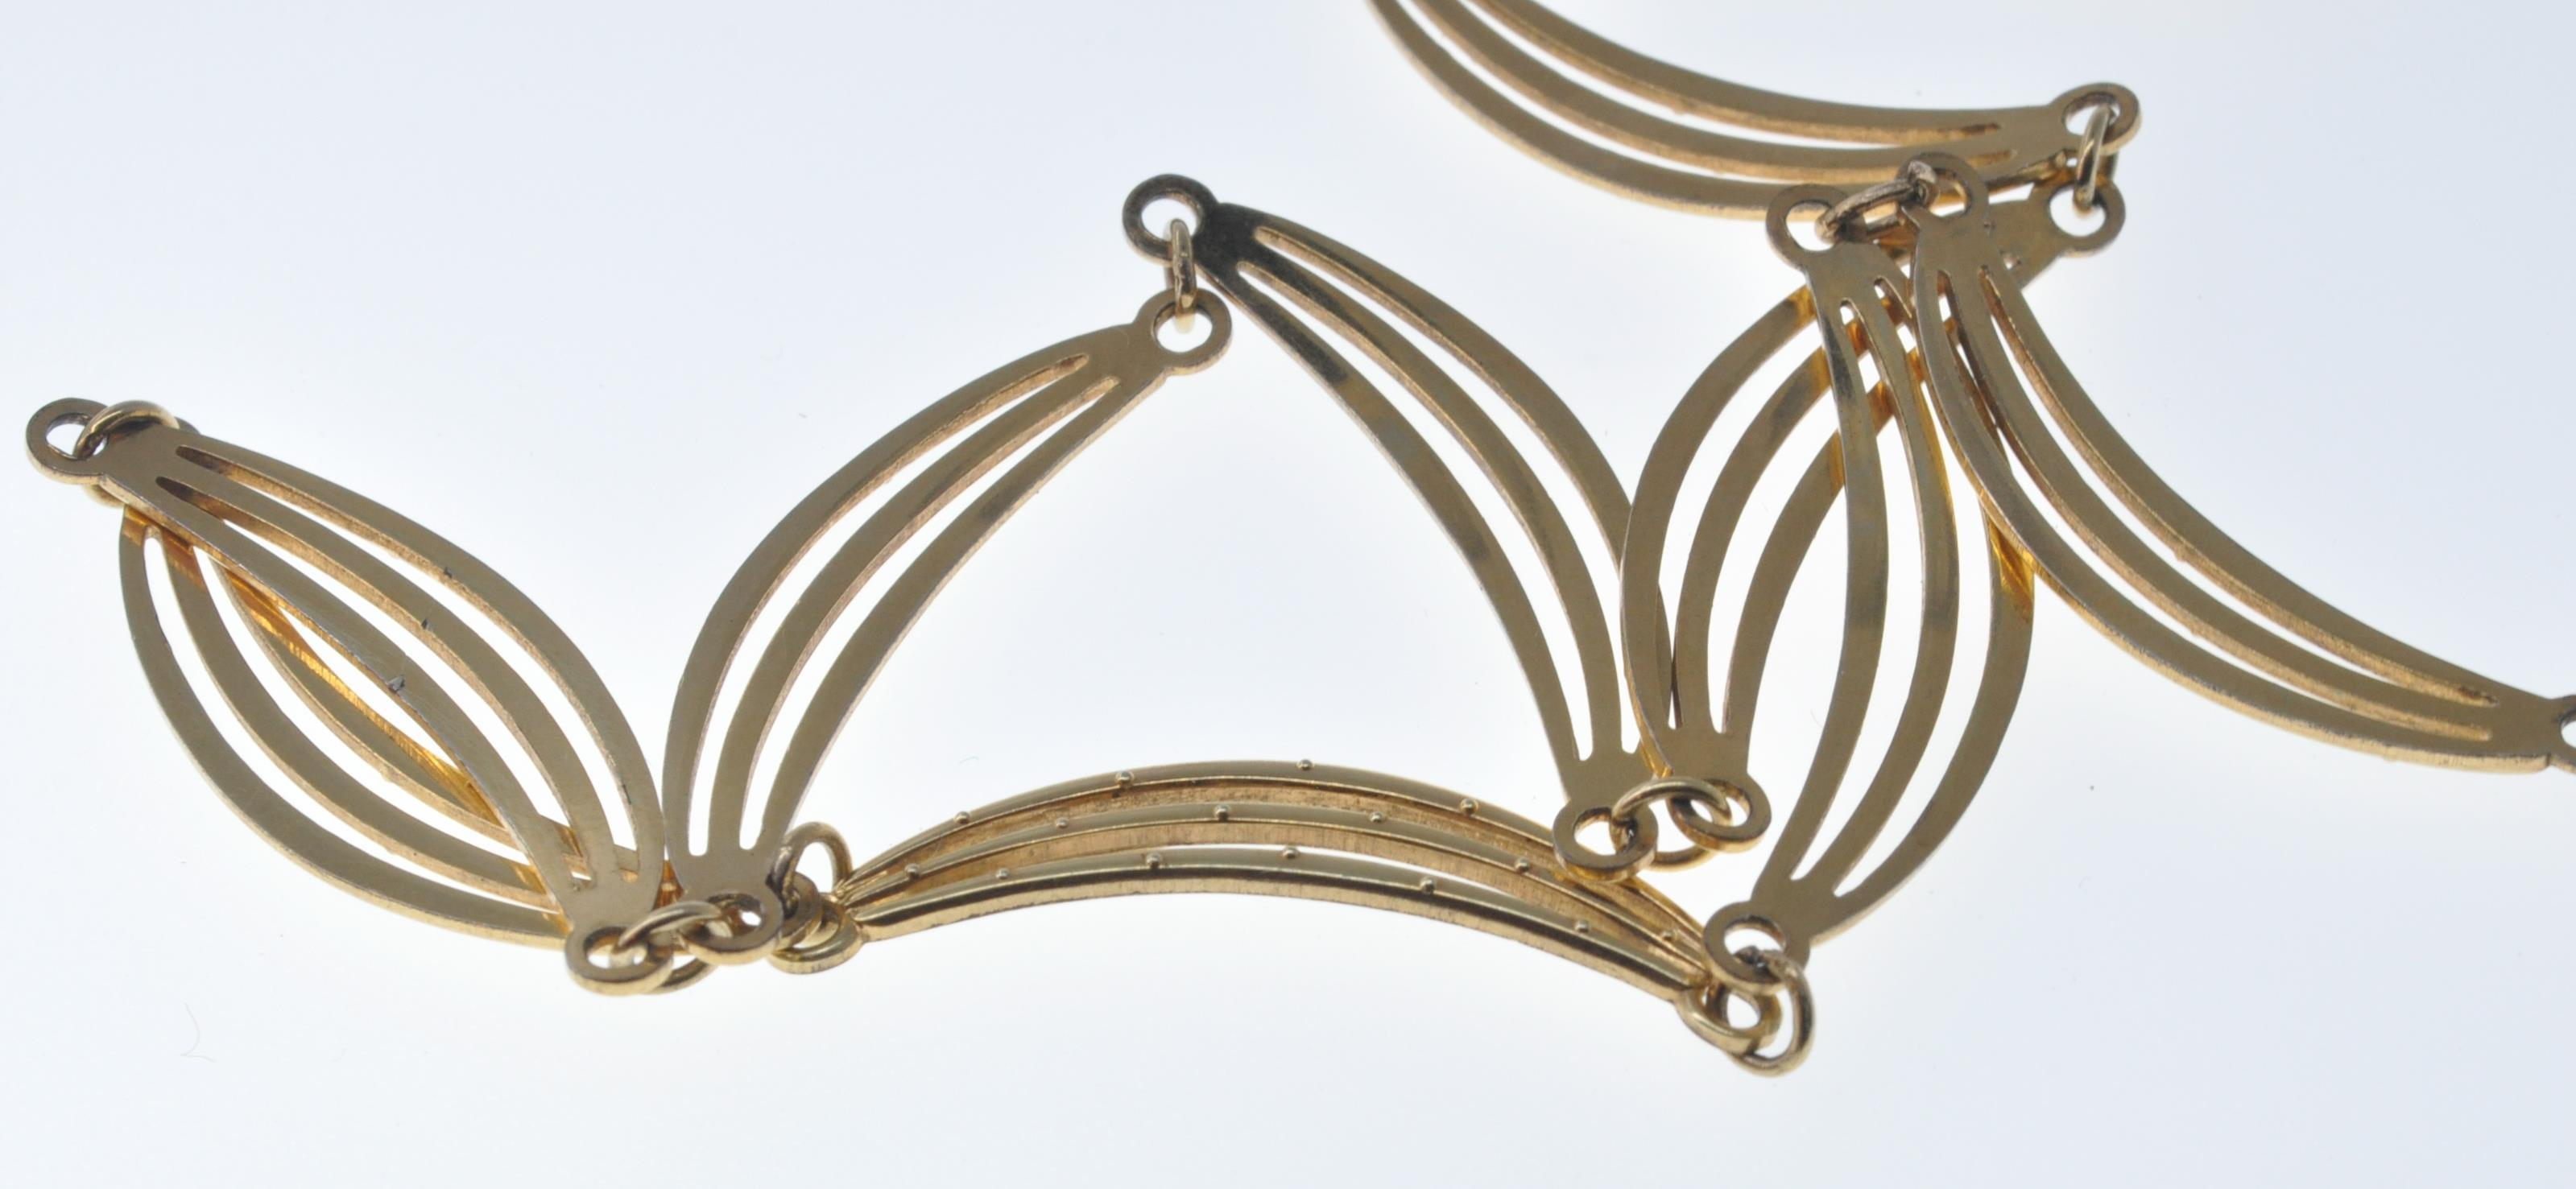 VINTAGE BANGLE AND NECKLACE - Image 9 of 9